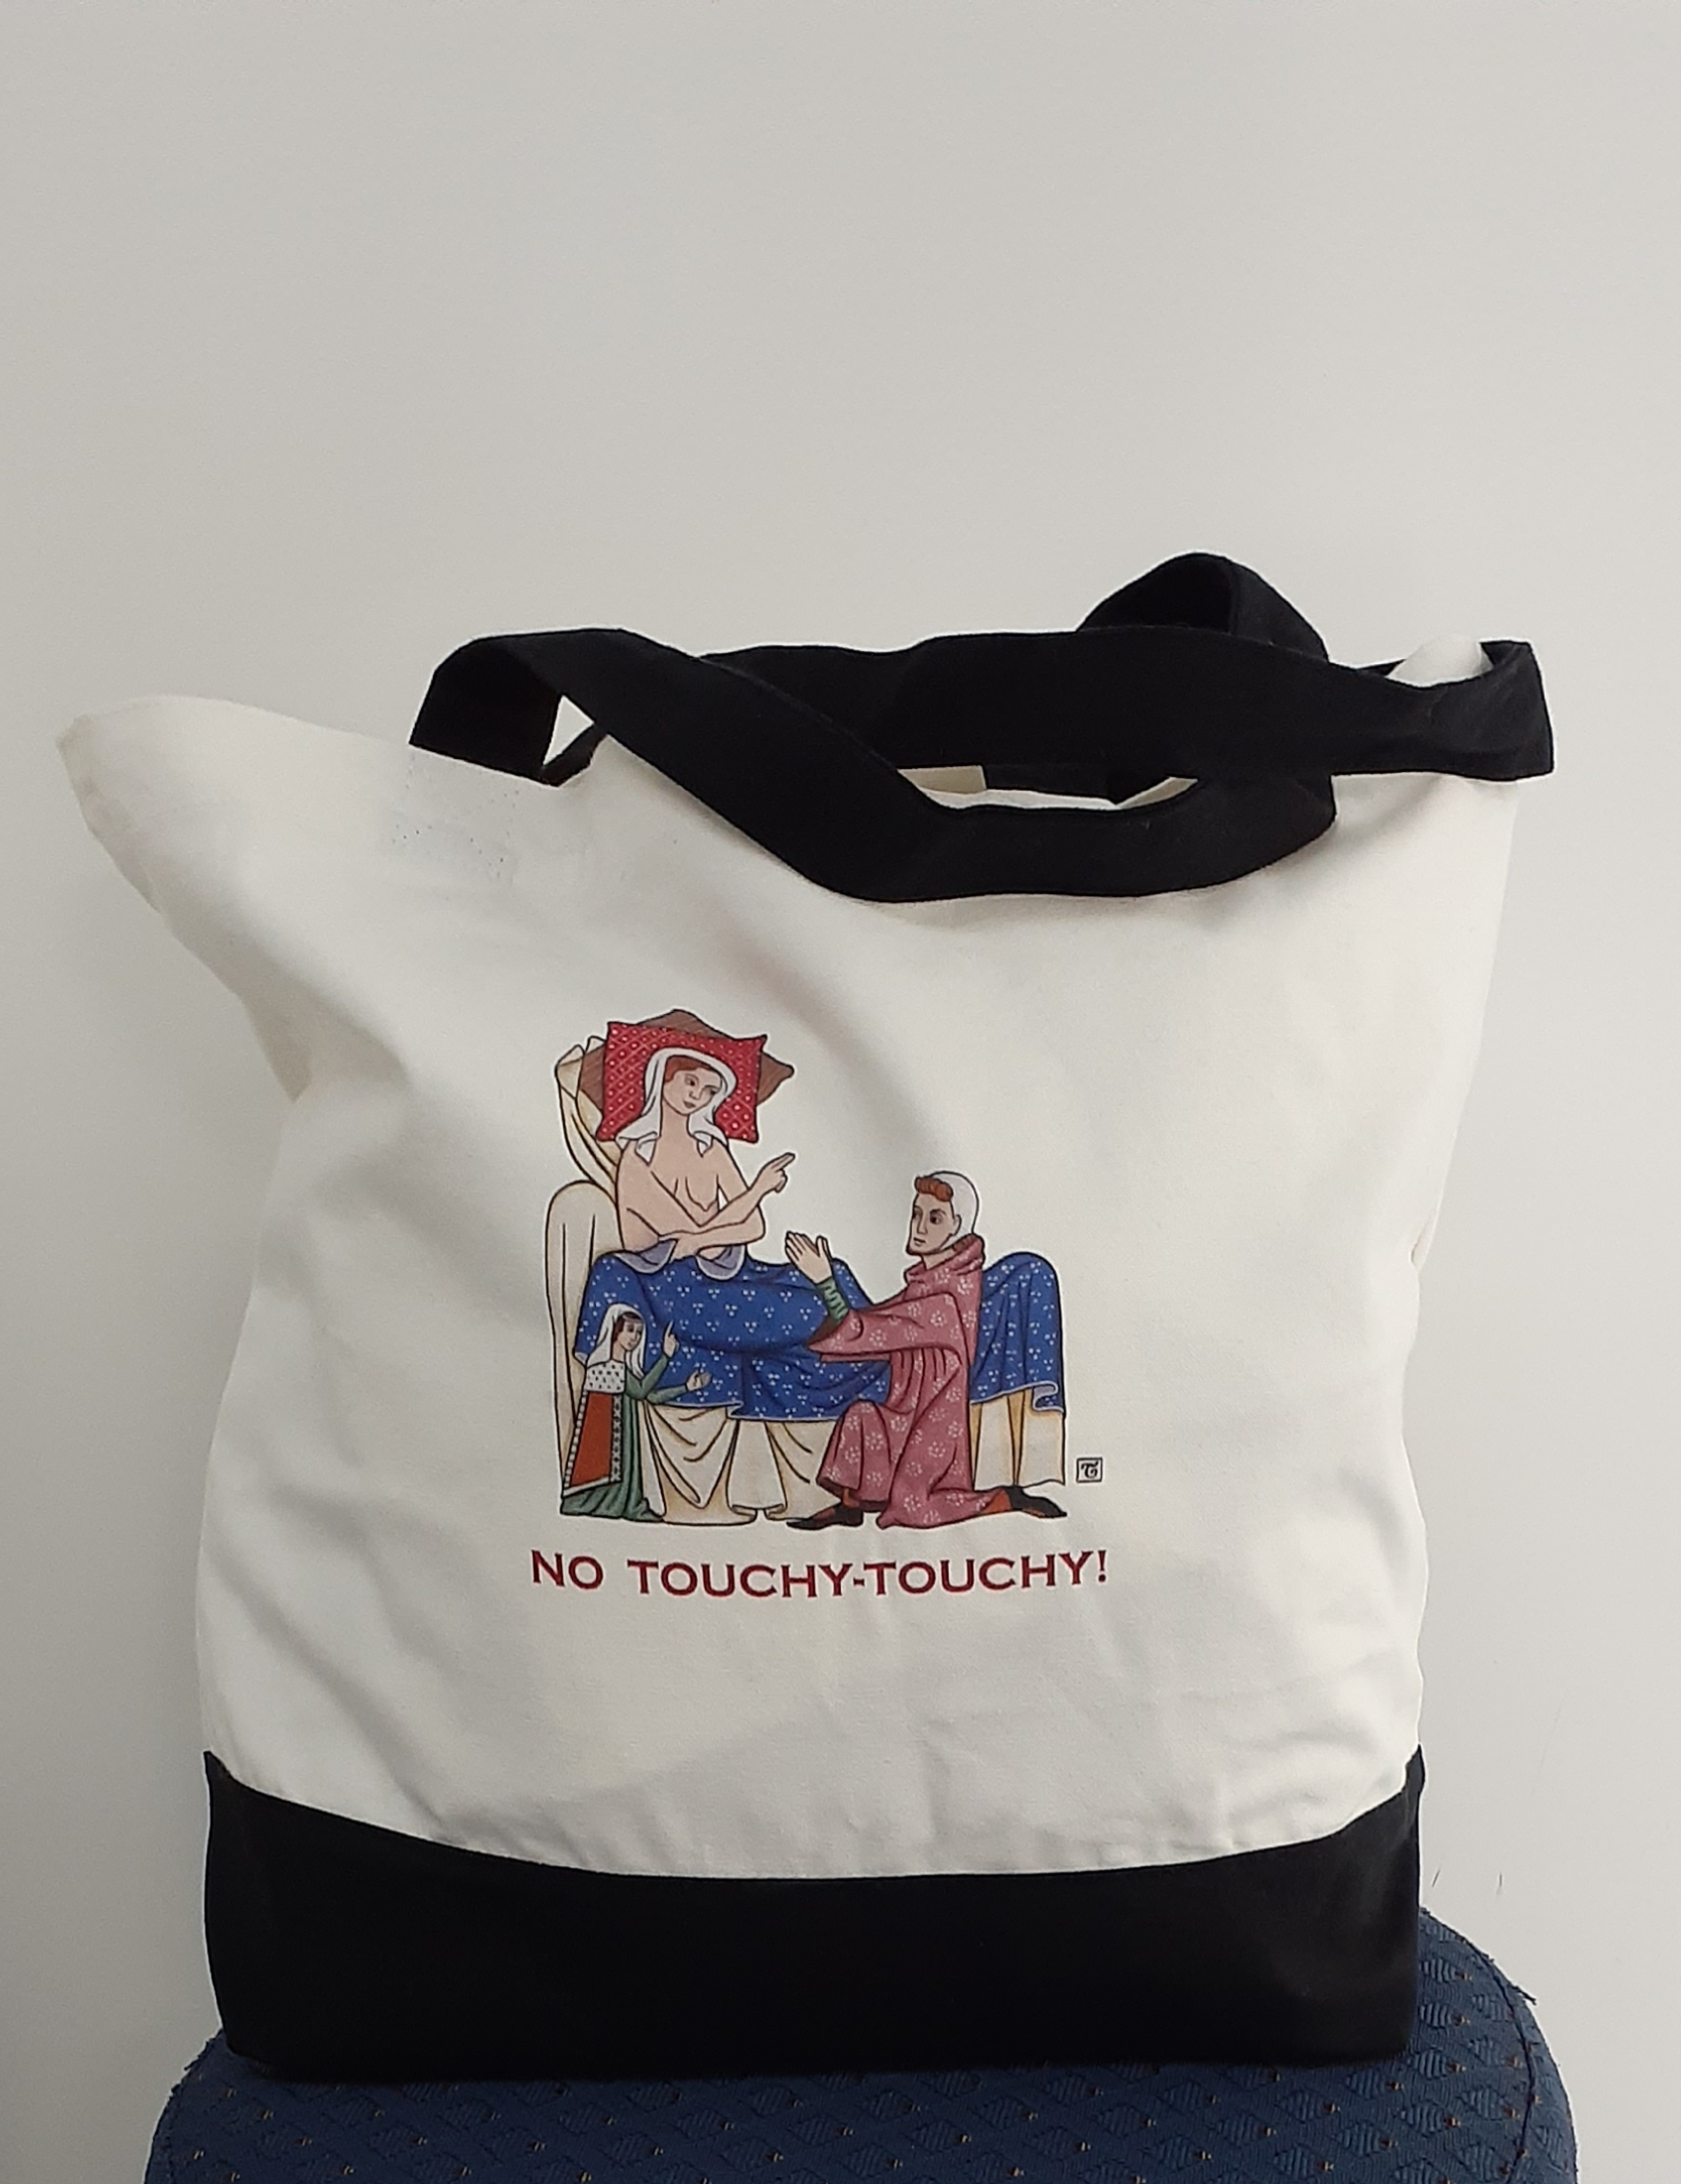 No touchy-touchy tote bag